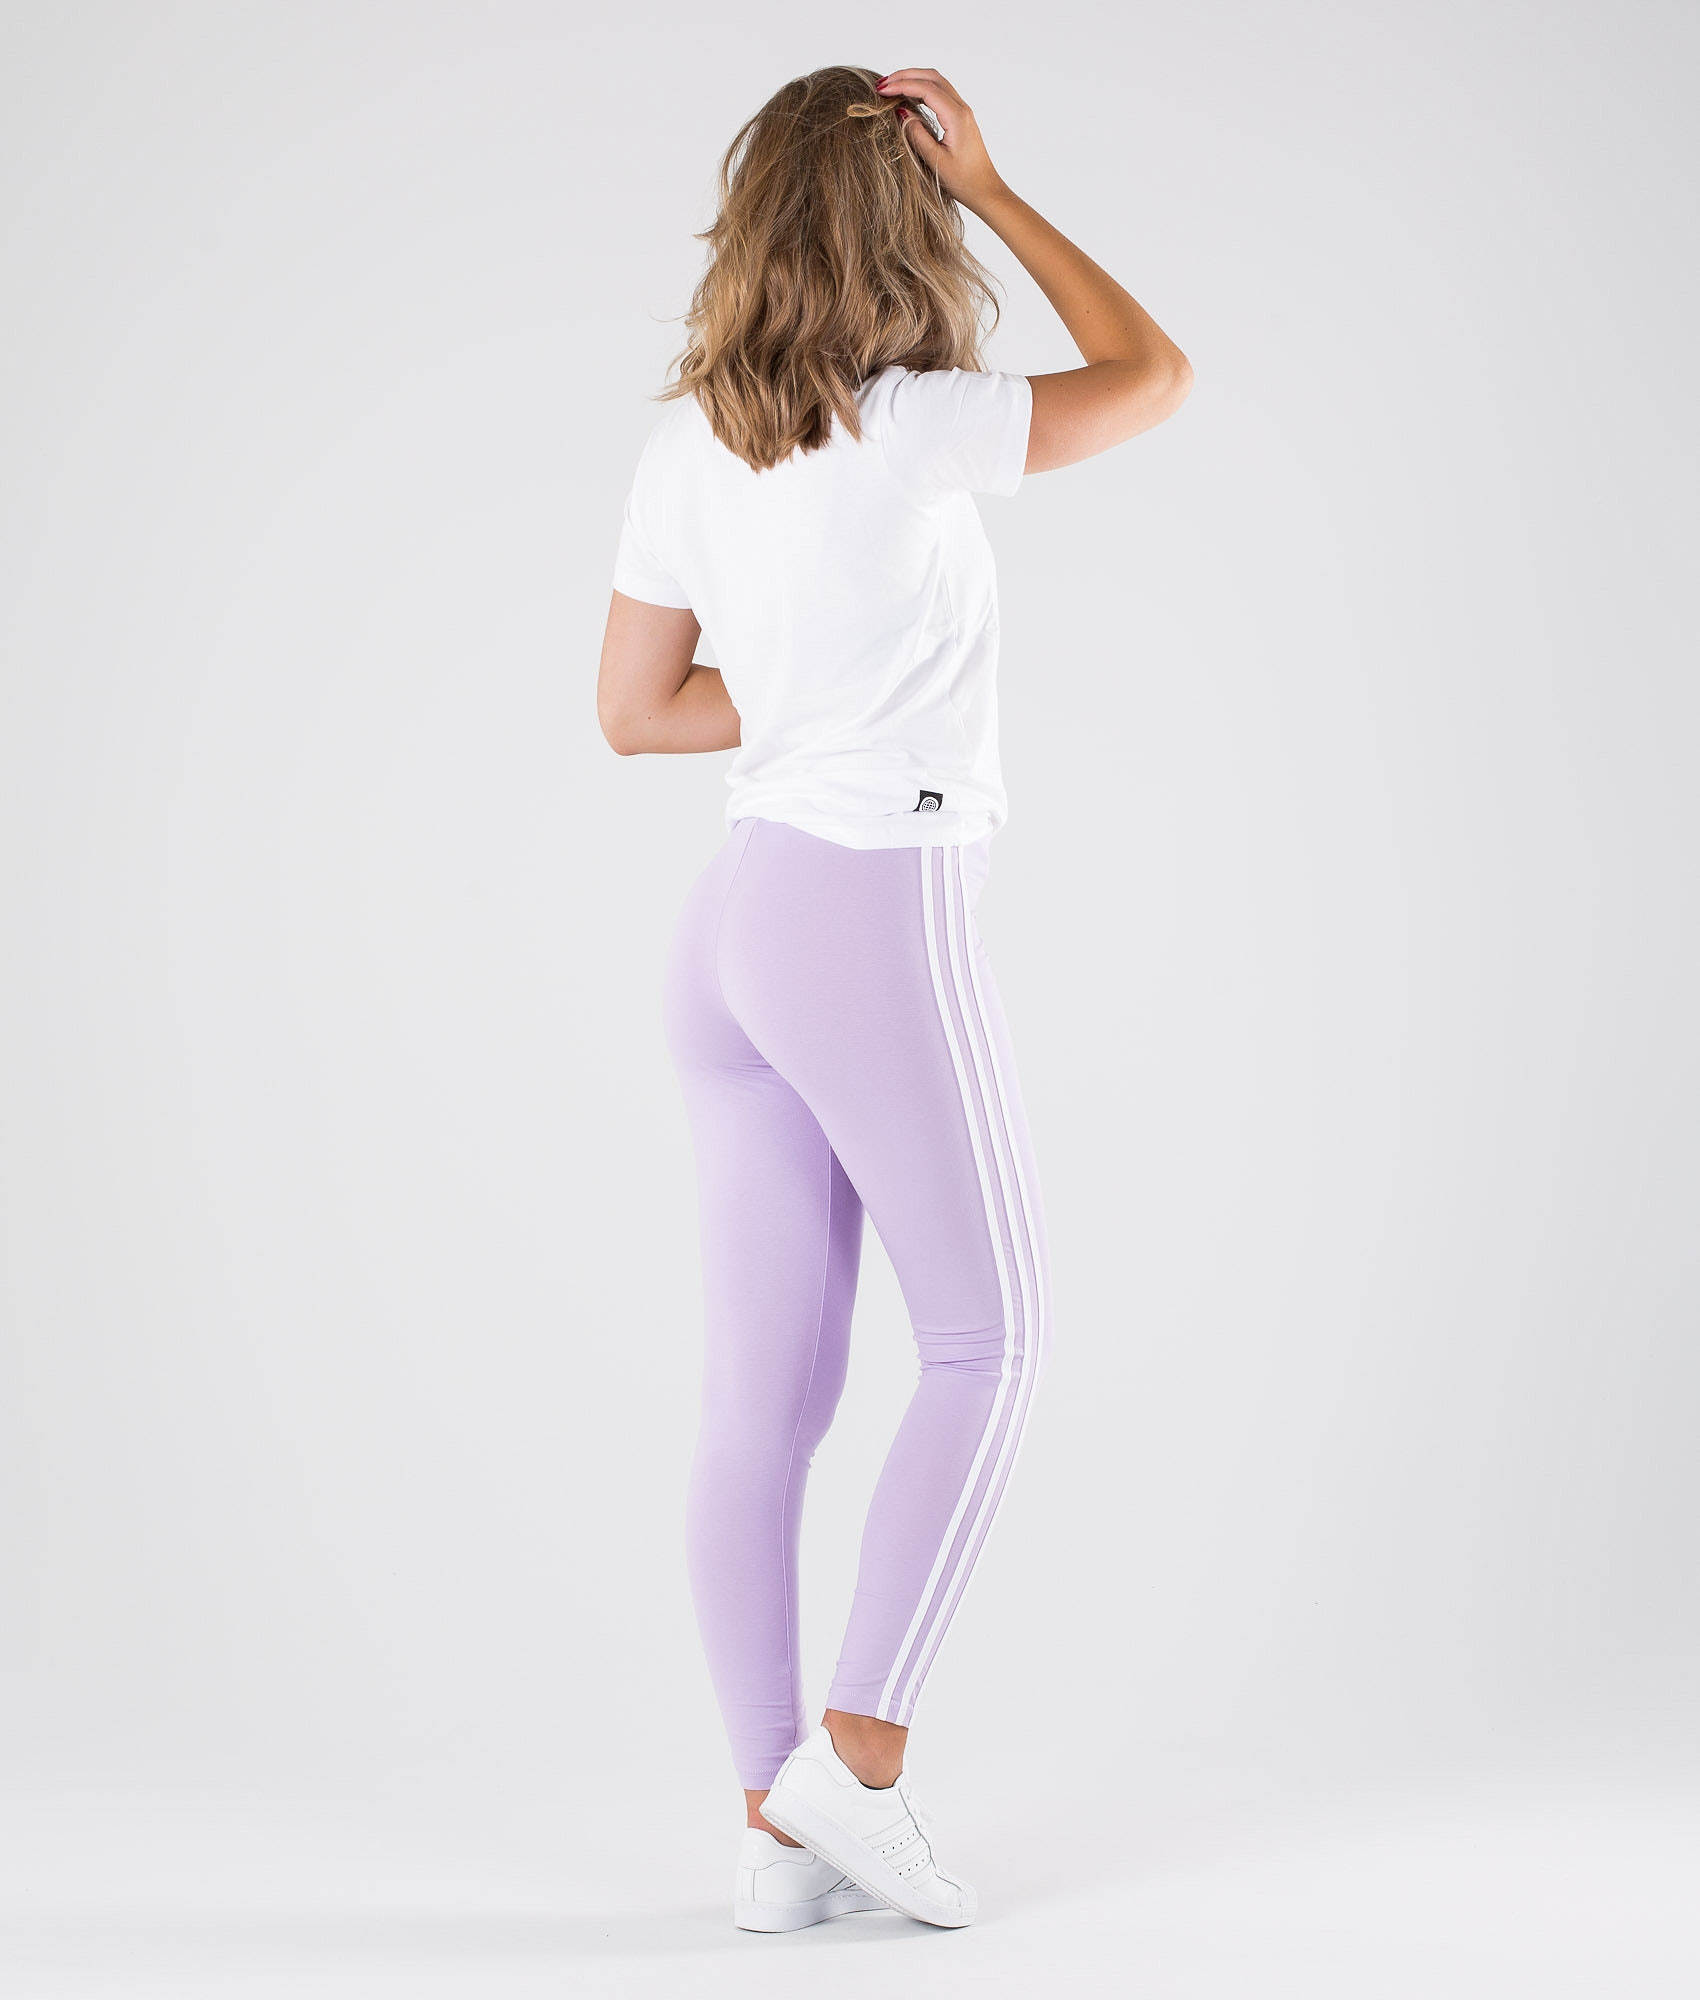 d055e770eaab6 Adidas Originals 3 Stripes Leggings Purple Glow - Ridestore.com